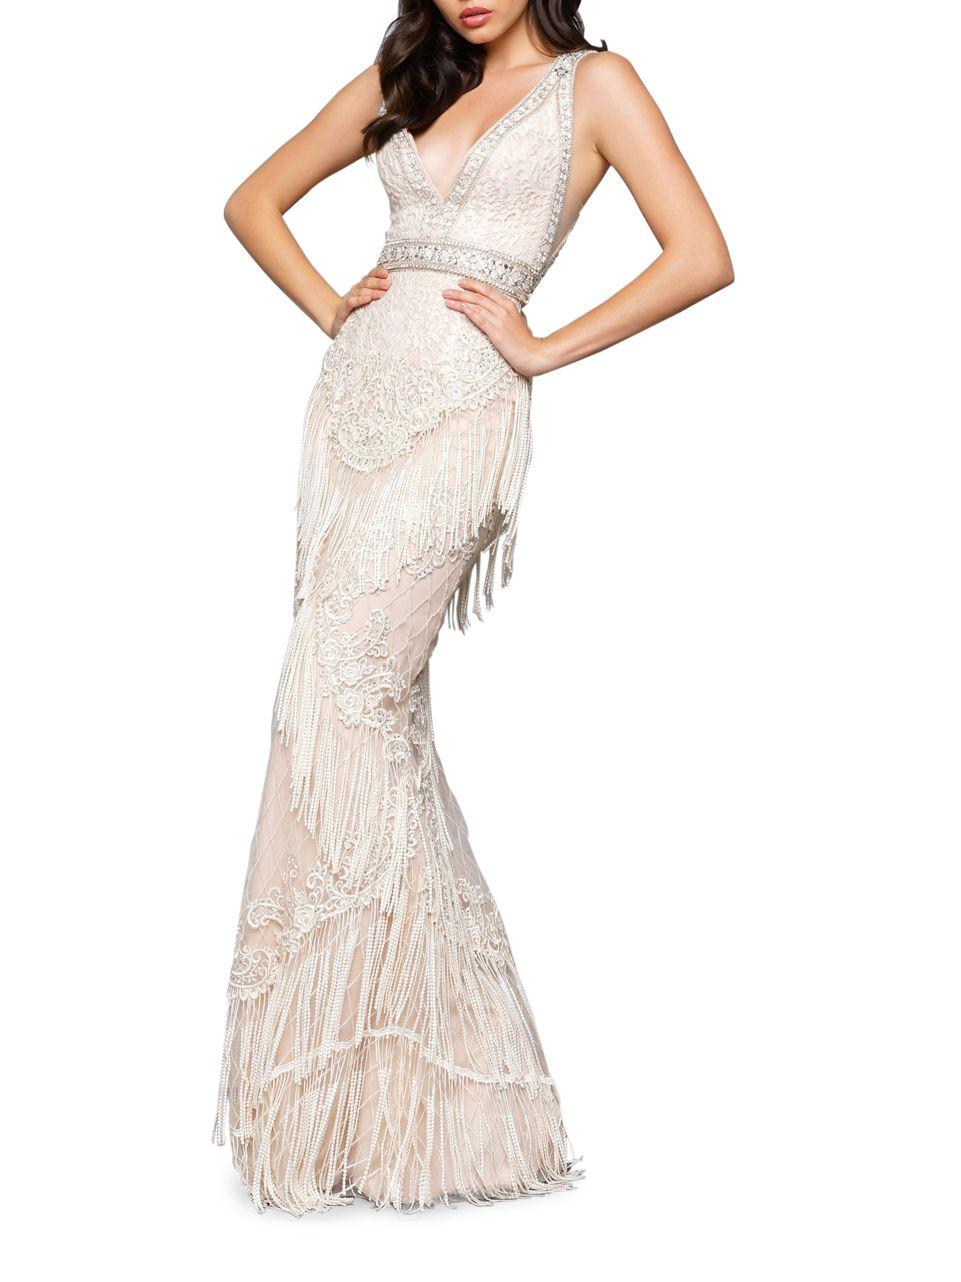 Lyst - Mac Duggal Sequin Embellished Gown in White